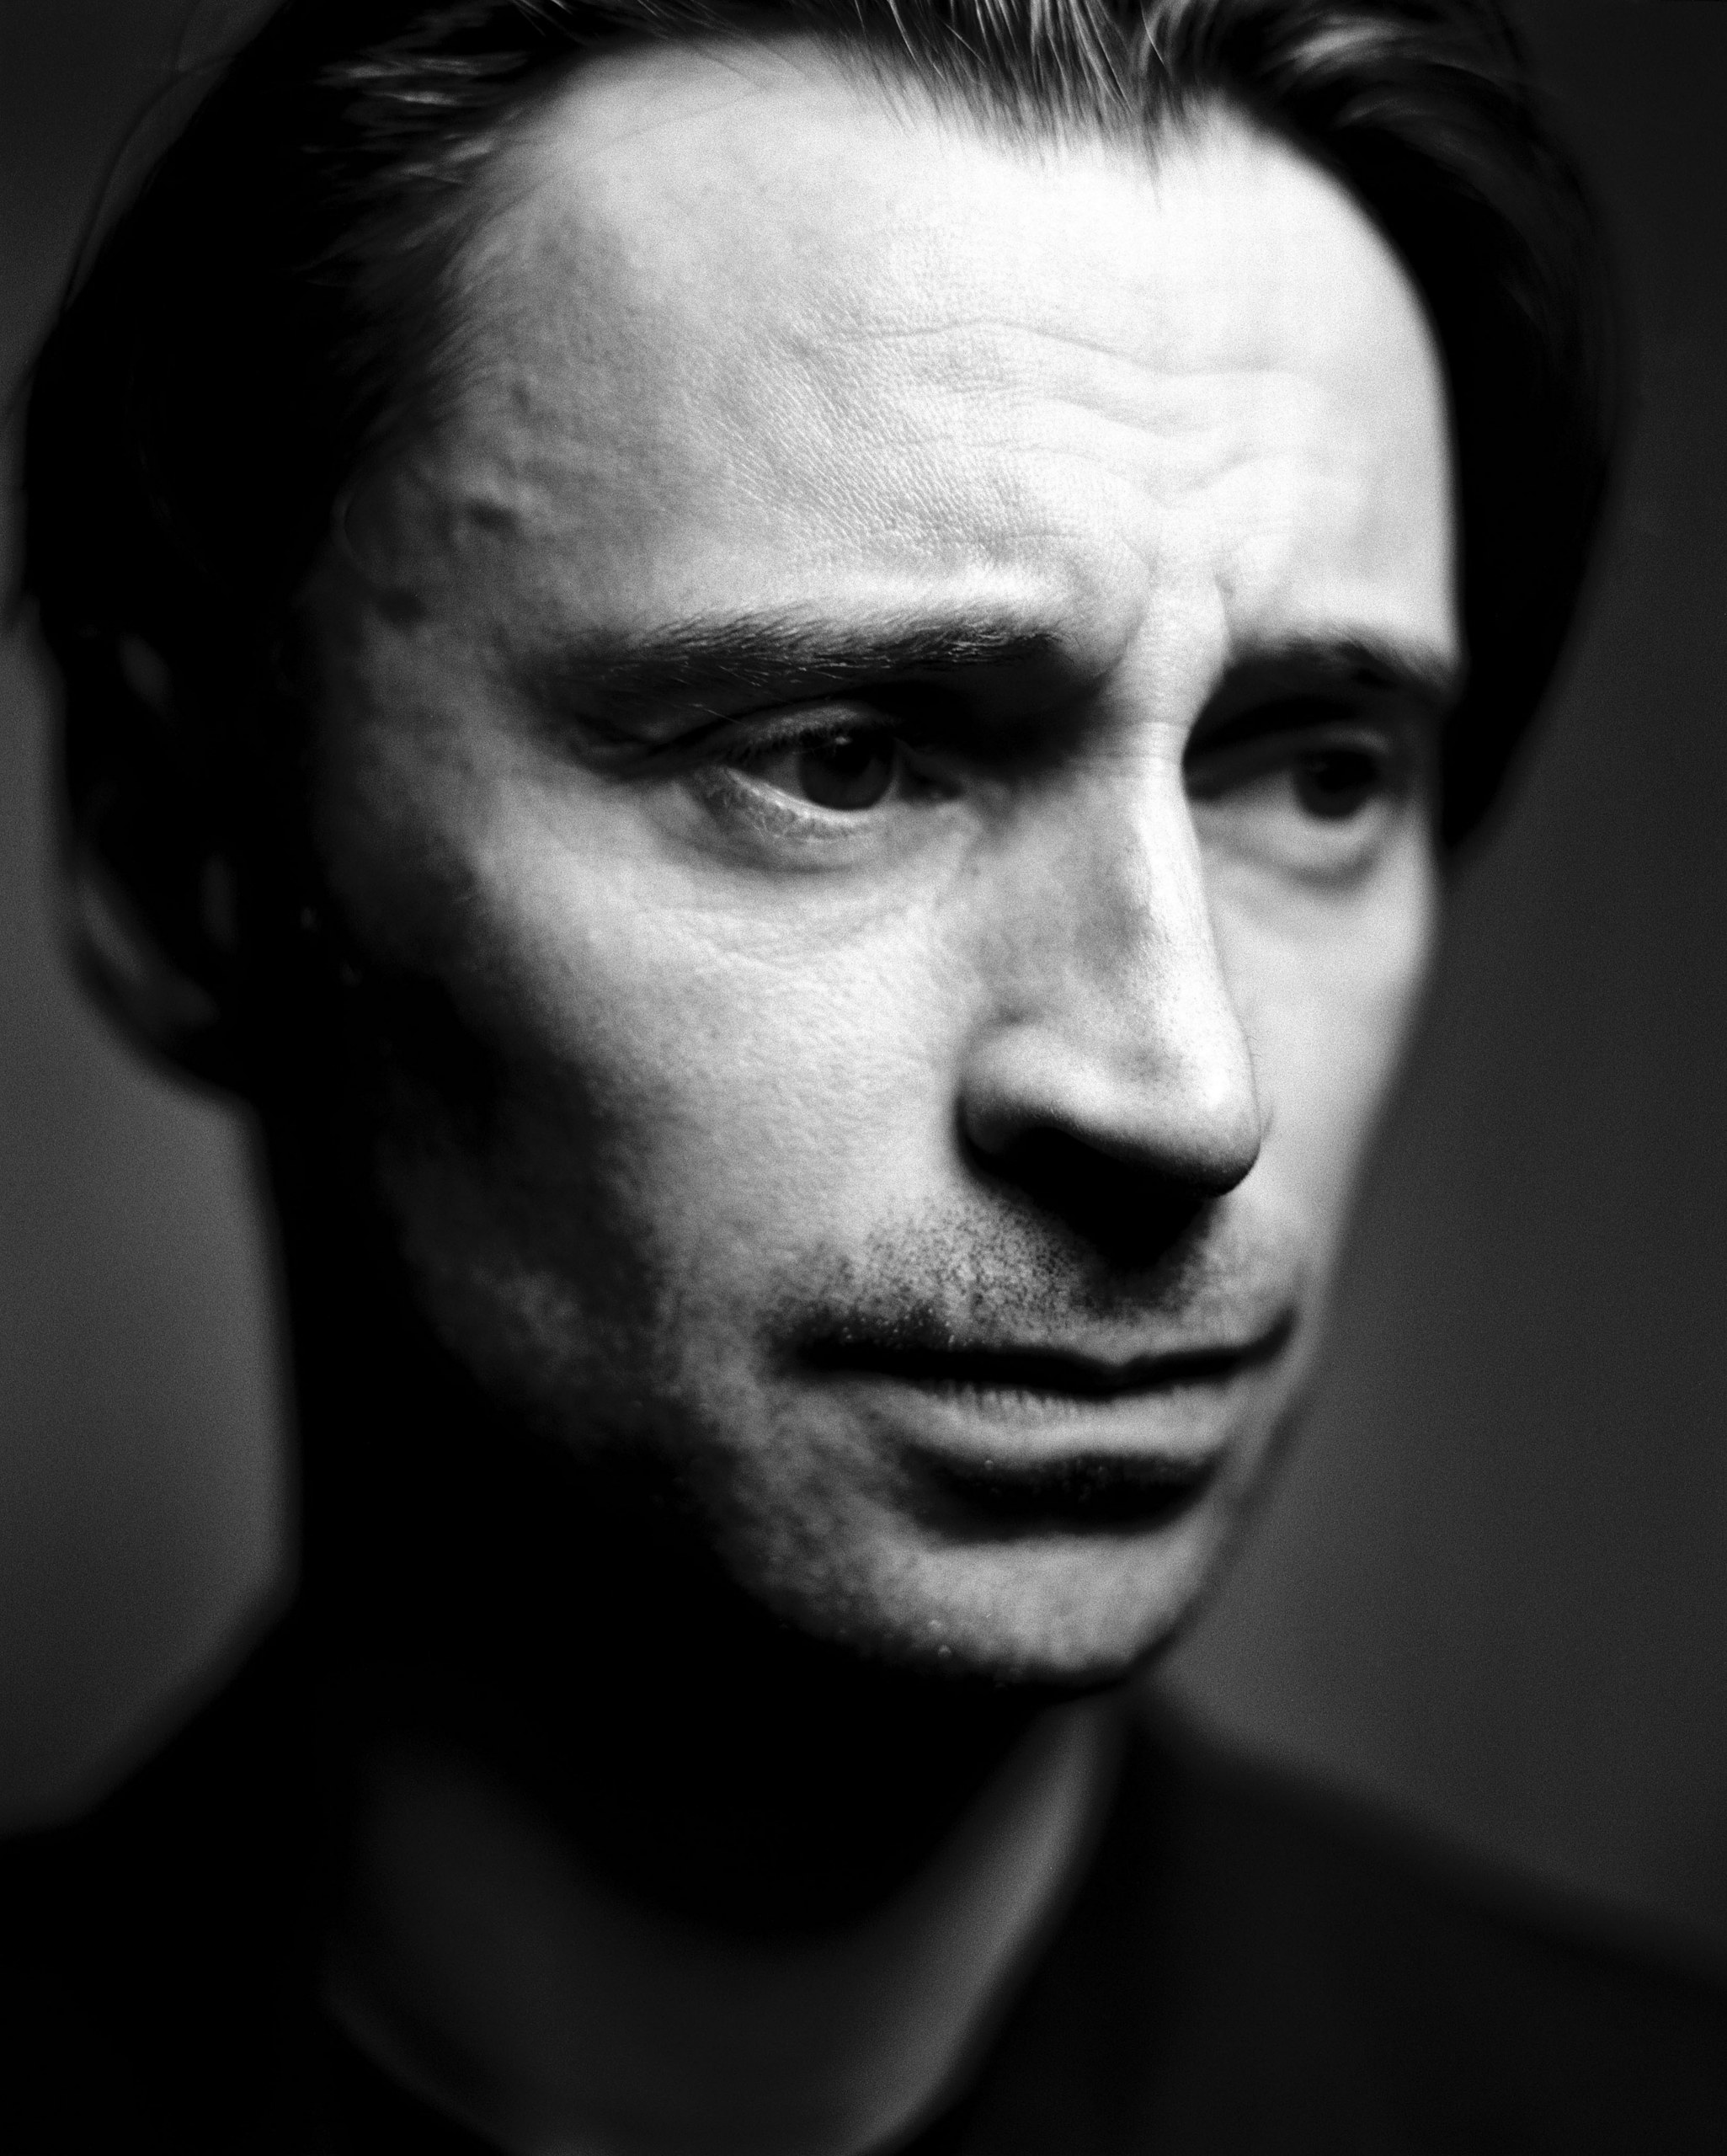 robert carlyle bowl of soup jokerobert carlyle 2016, robert carlyle gif, robert carlyle height, robert carlyle young, robert carlyle wife, robert carlyle doctor who, robert carlyle vk, robert carlyle family, robert carlyle gay kiss, robert carlyle imdb, robert carlyle colin o'donoghue, robert carlyle priest, robert carlyle films, robert carlyle kisses, robert carlyle scotland tonight, robert carlyle instagram, robert carlyle bowl of soup joke, robert carlyle child, robert carlyle canada, robert carlyle james bond